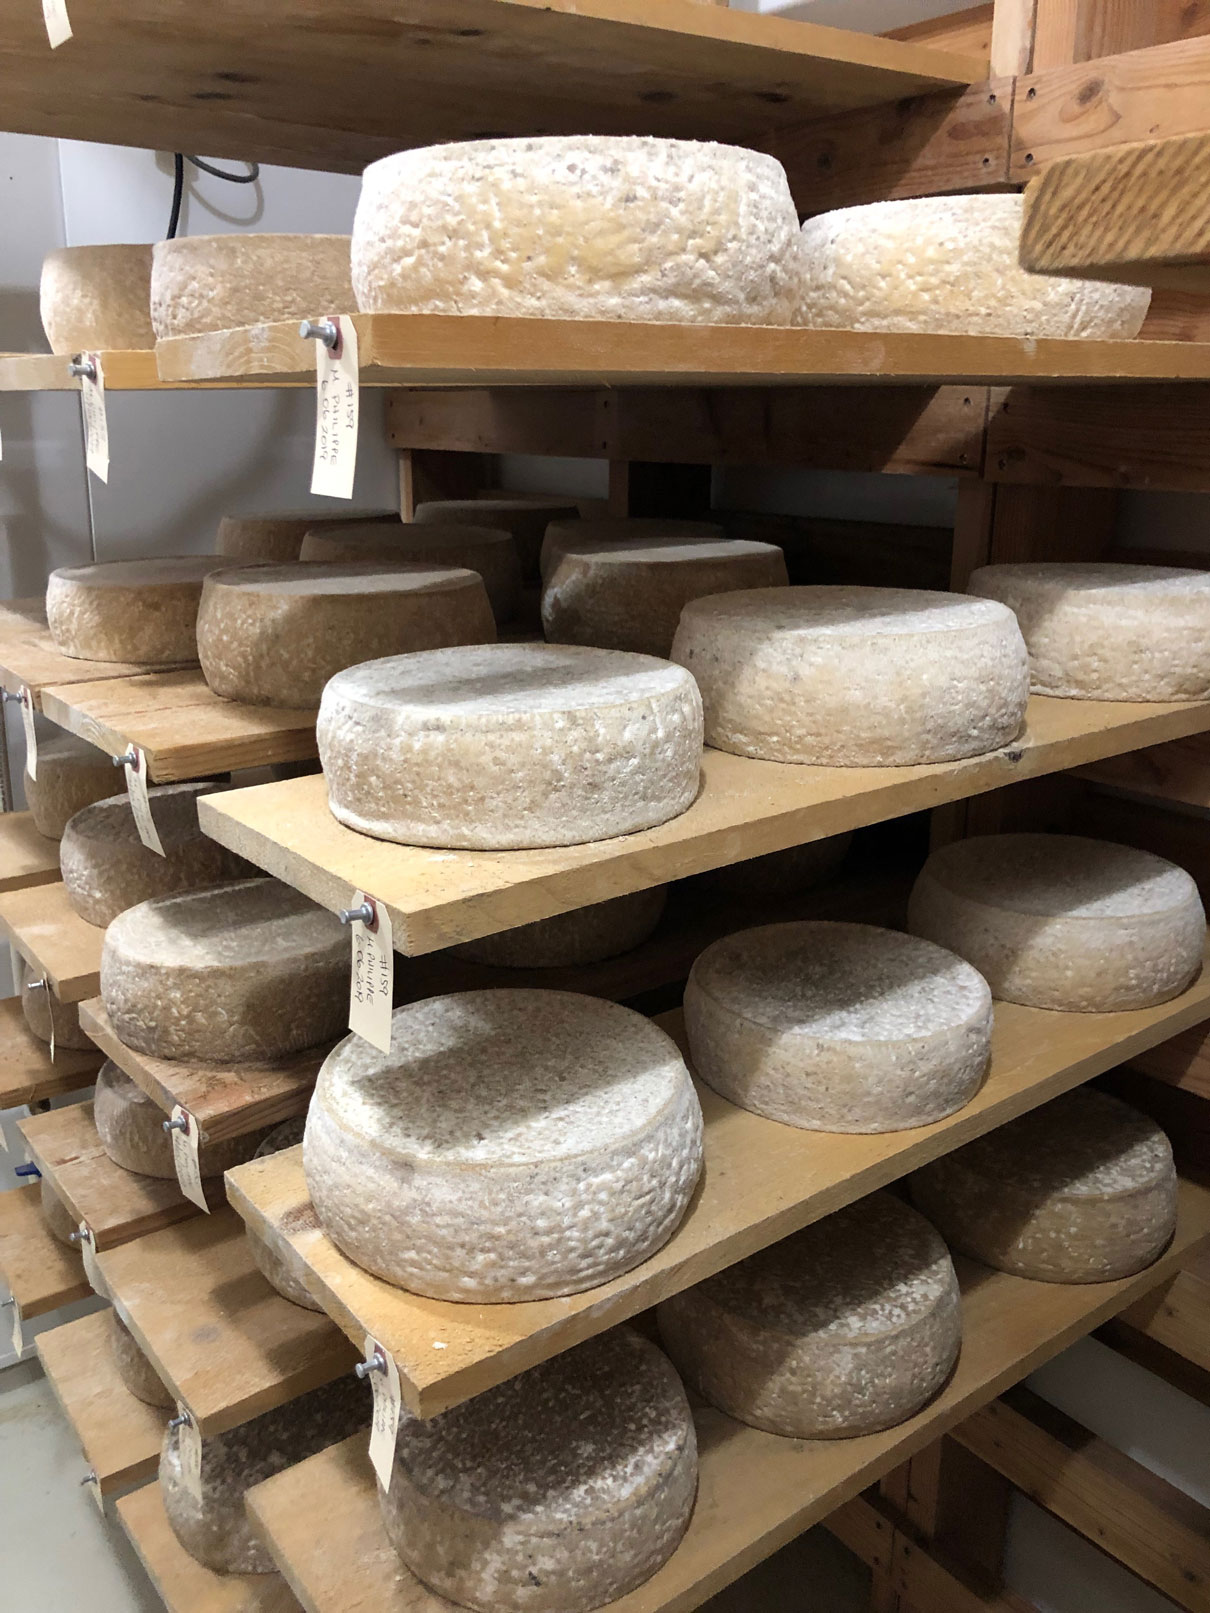 Pazzo Marco cheese aging on shelves